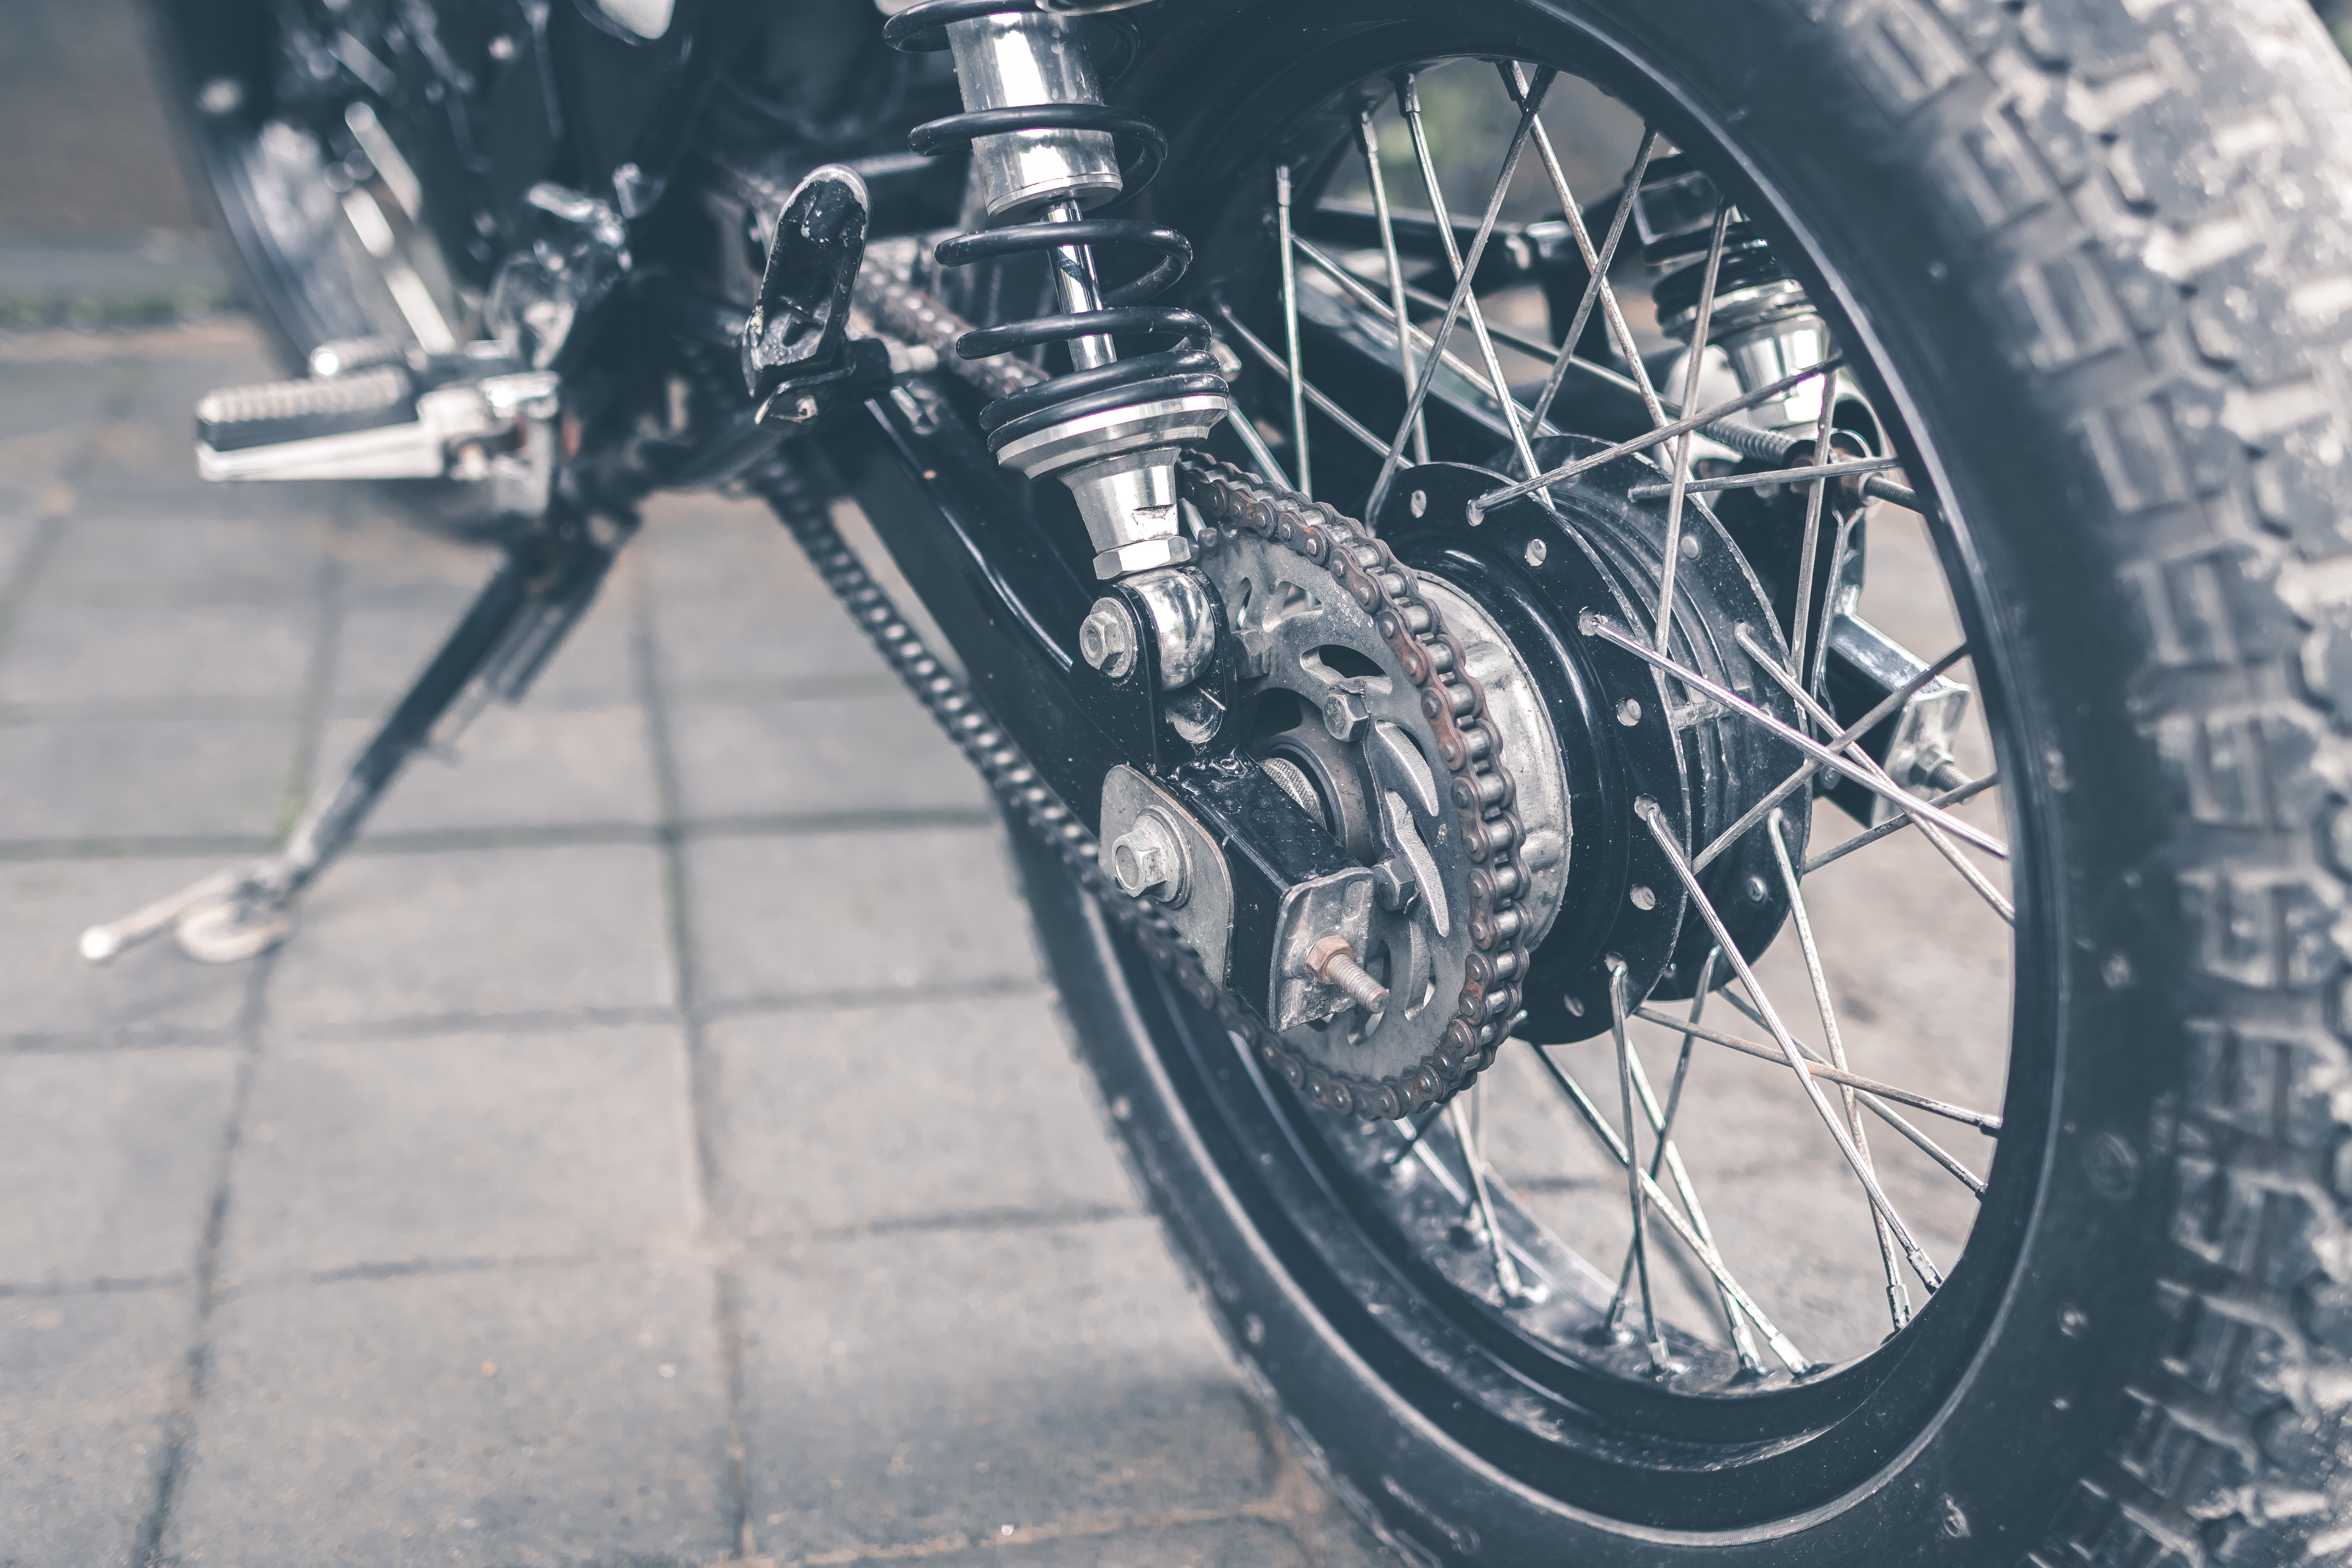 black underbone motorcycle